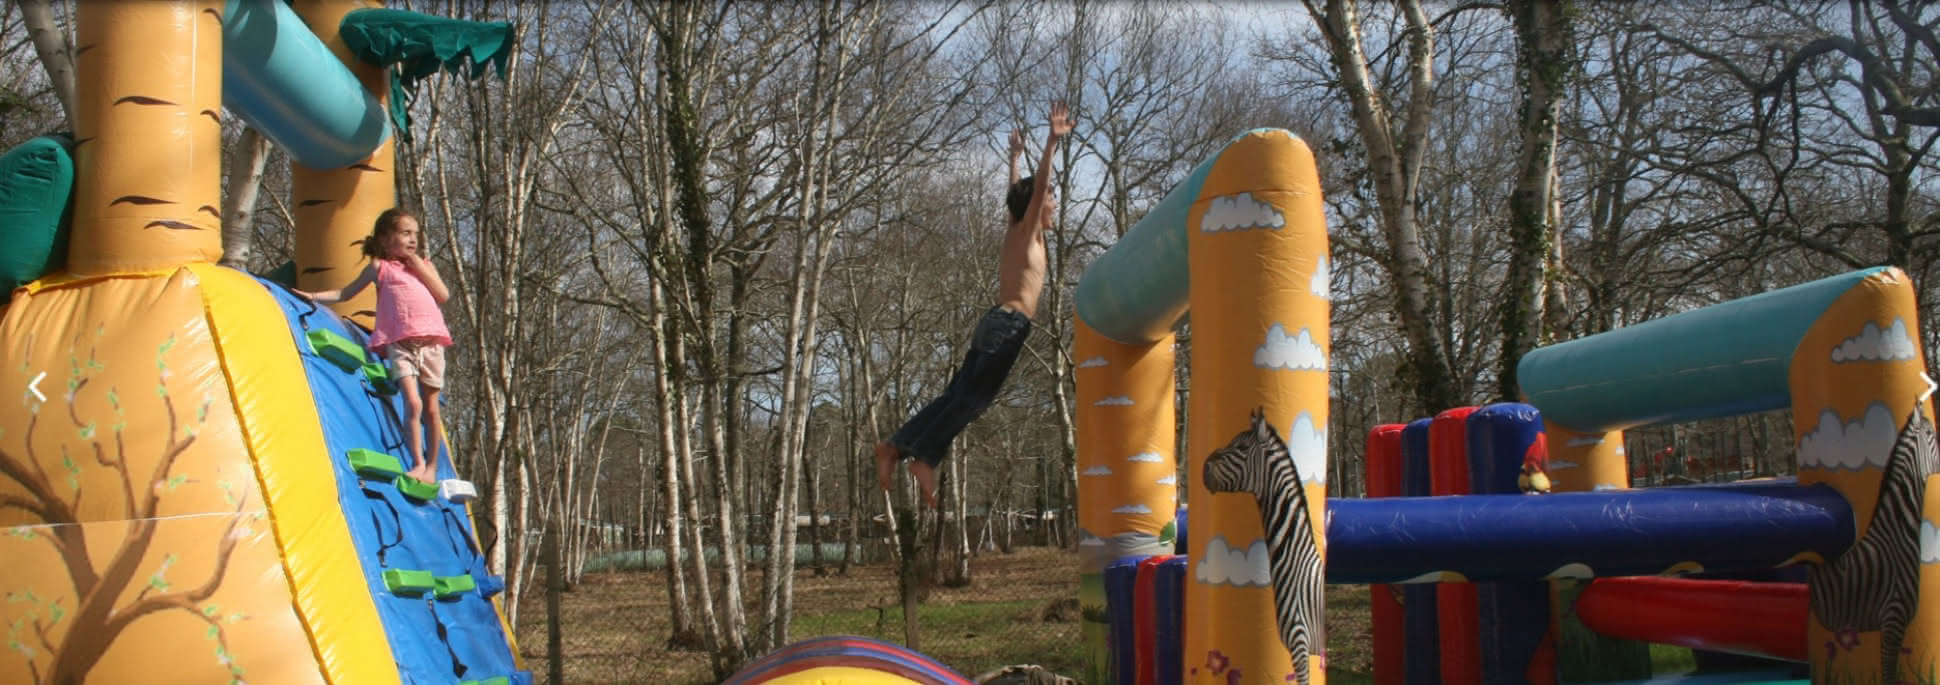 Parcours Gonflables & Trampoline